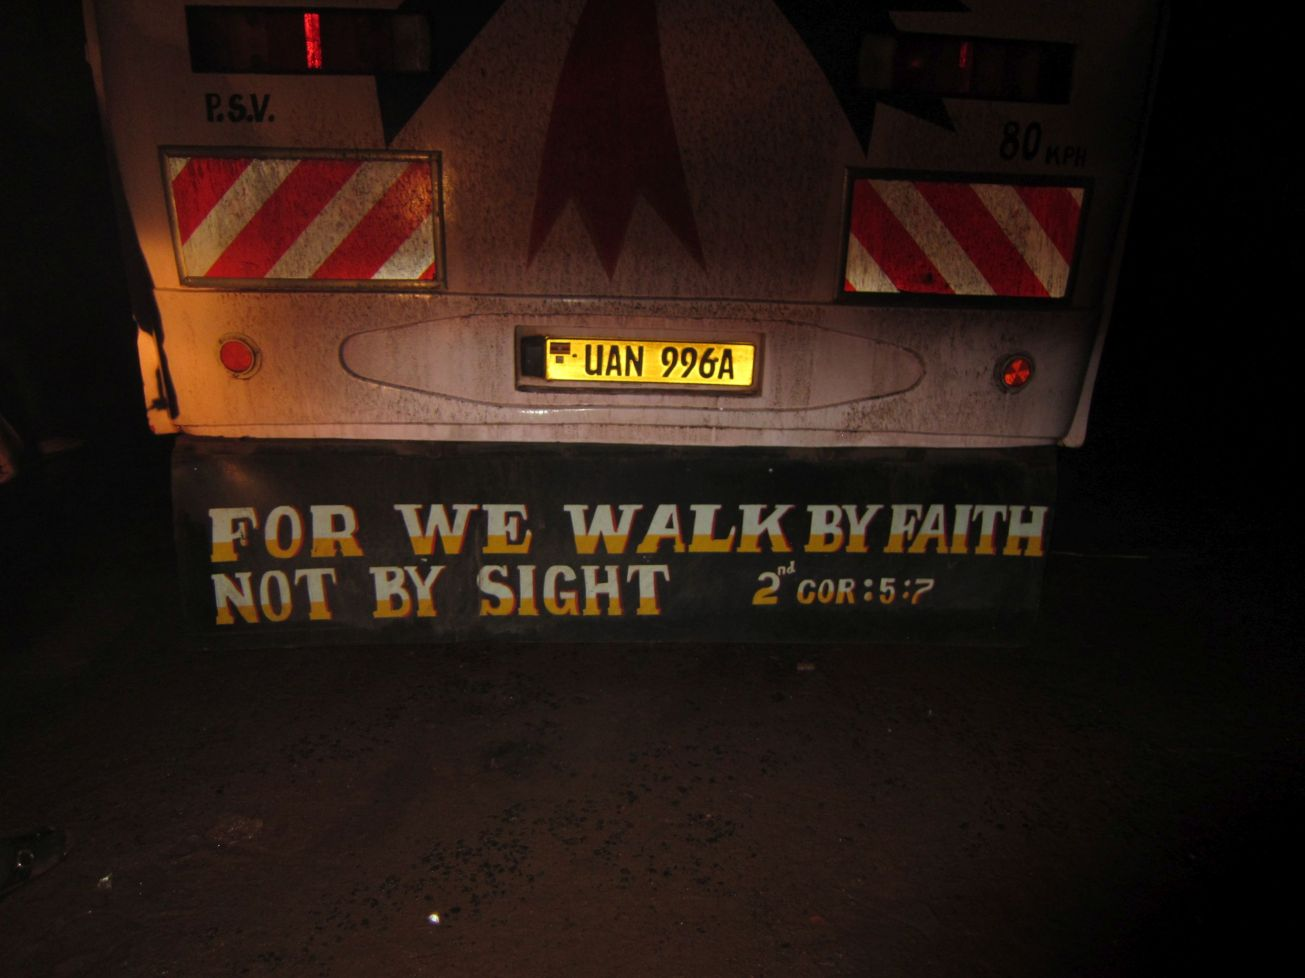 Jesus, Christ, Uganda, Gabon, God, religion, sticker, driving, roads, faith, sight